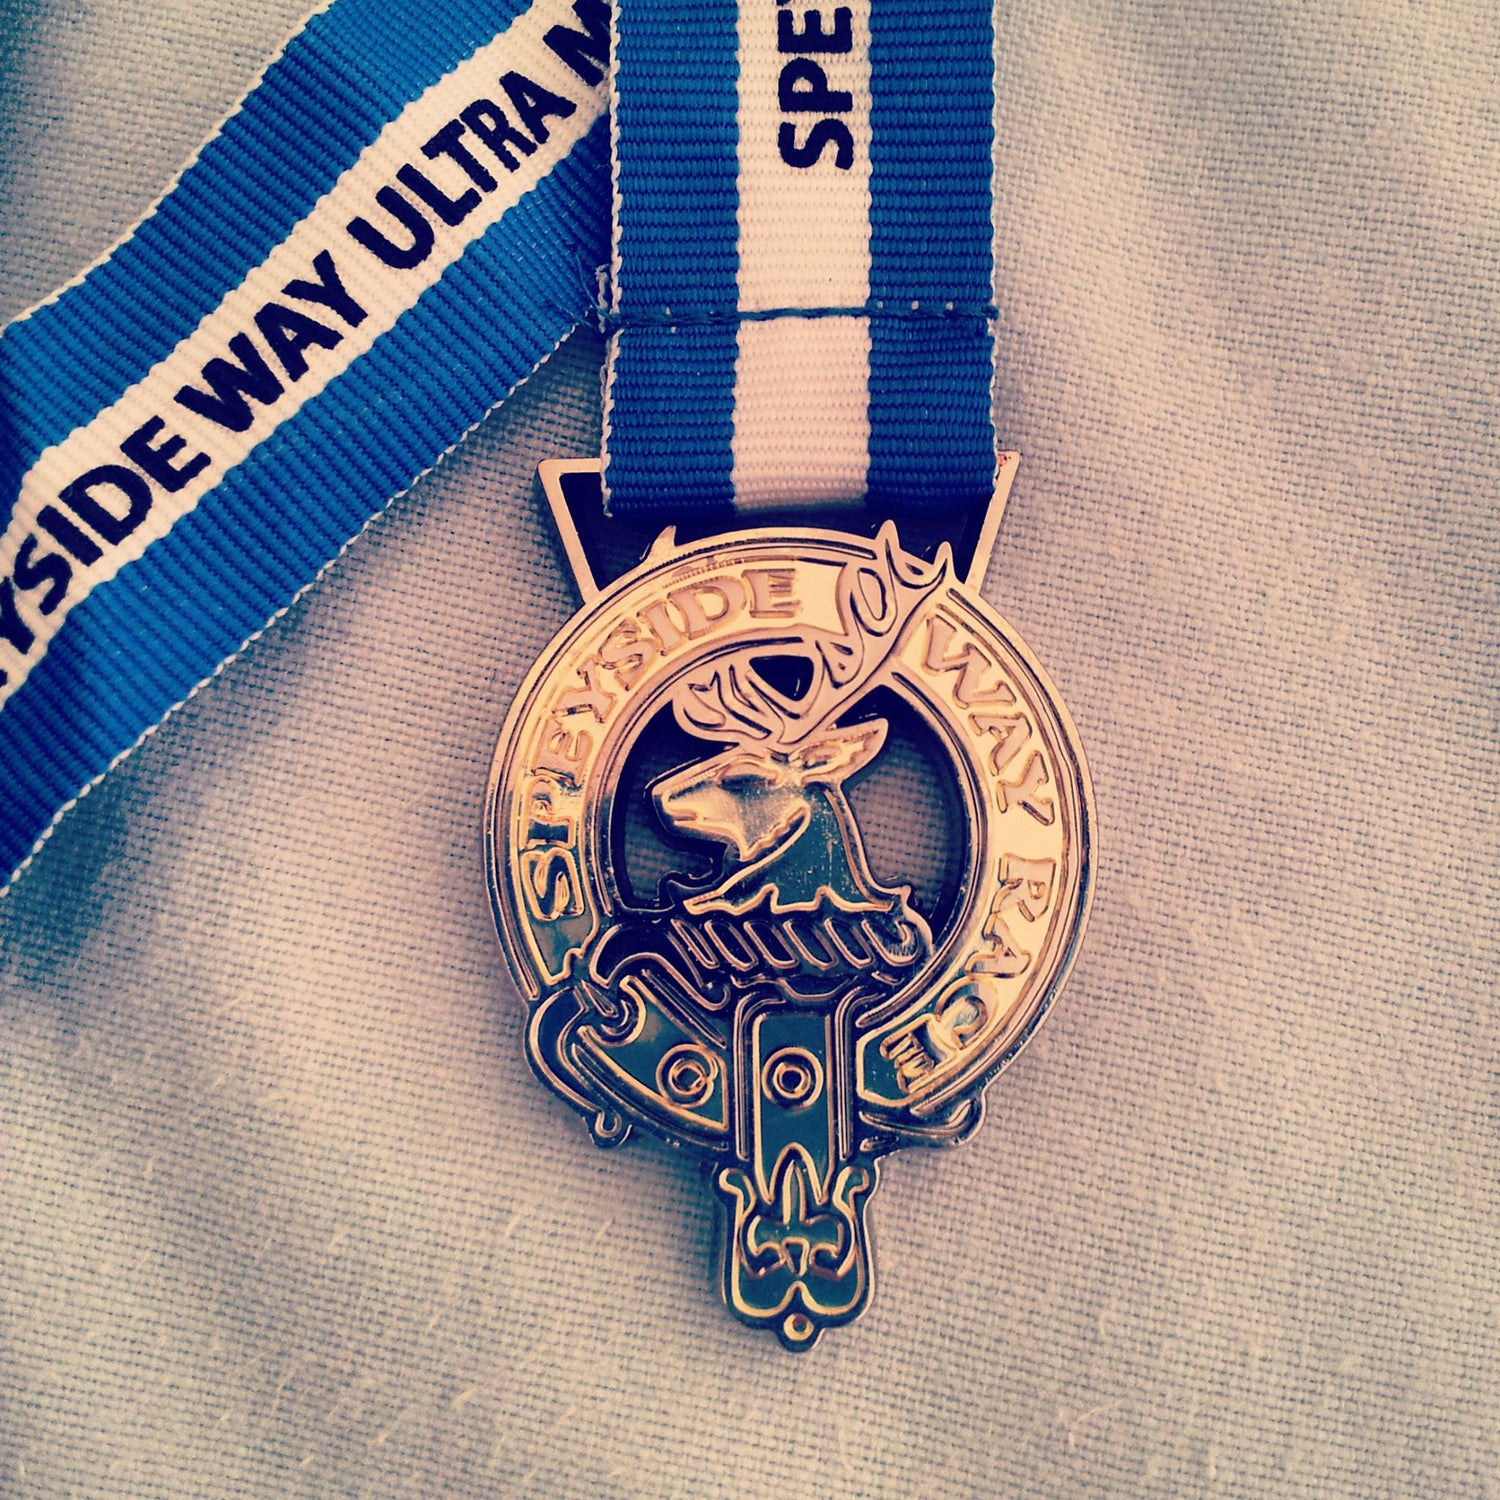 """Williams: 36.5 miles. Simple. Chunky. Nice. A race nestled in beautiful scenery with a suitably """"traily"""" medal."""